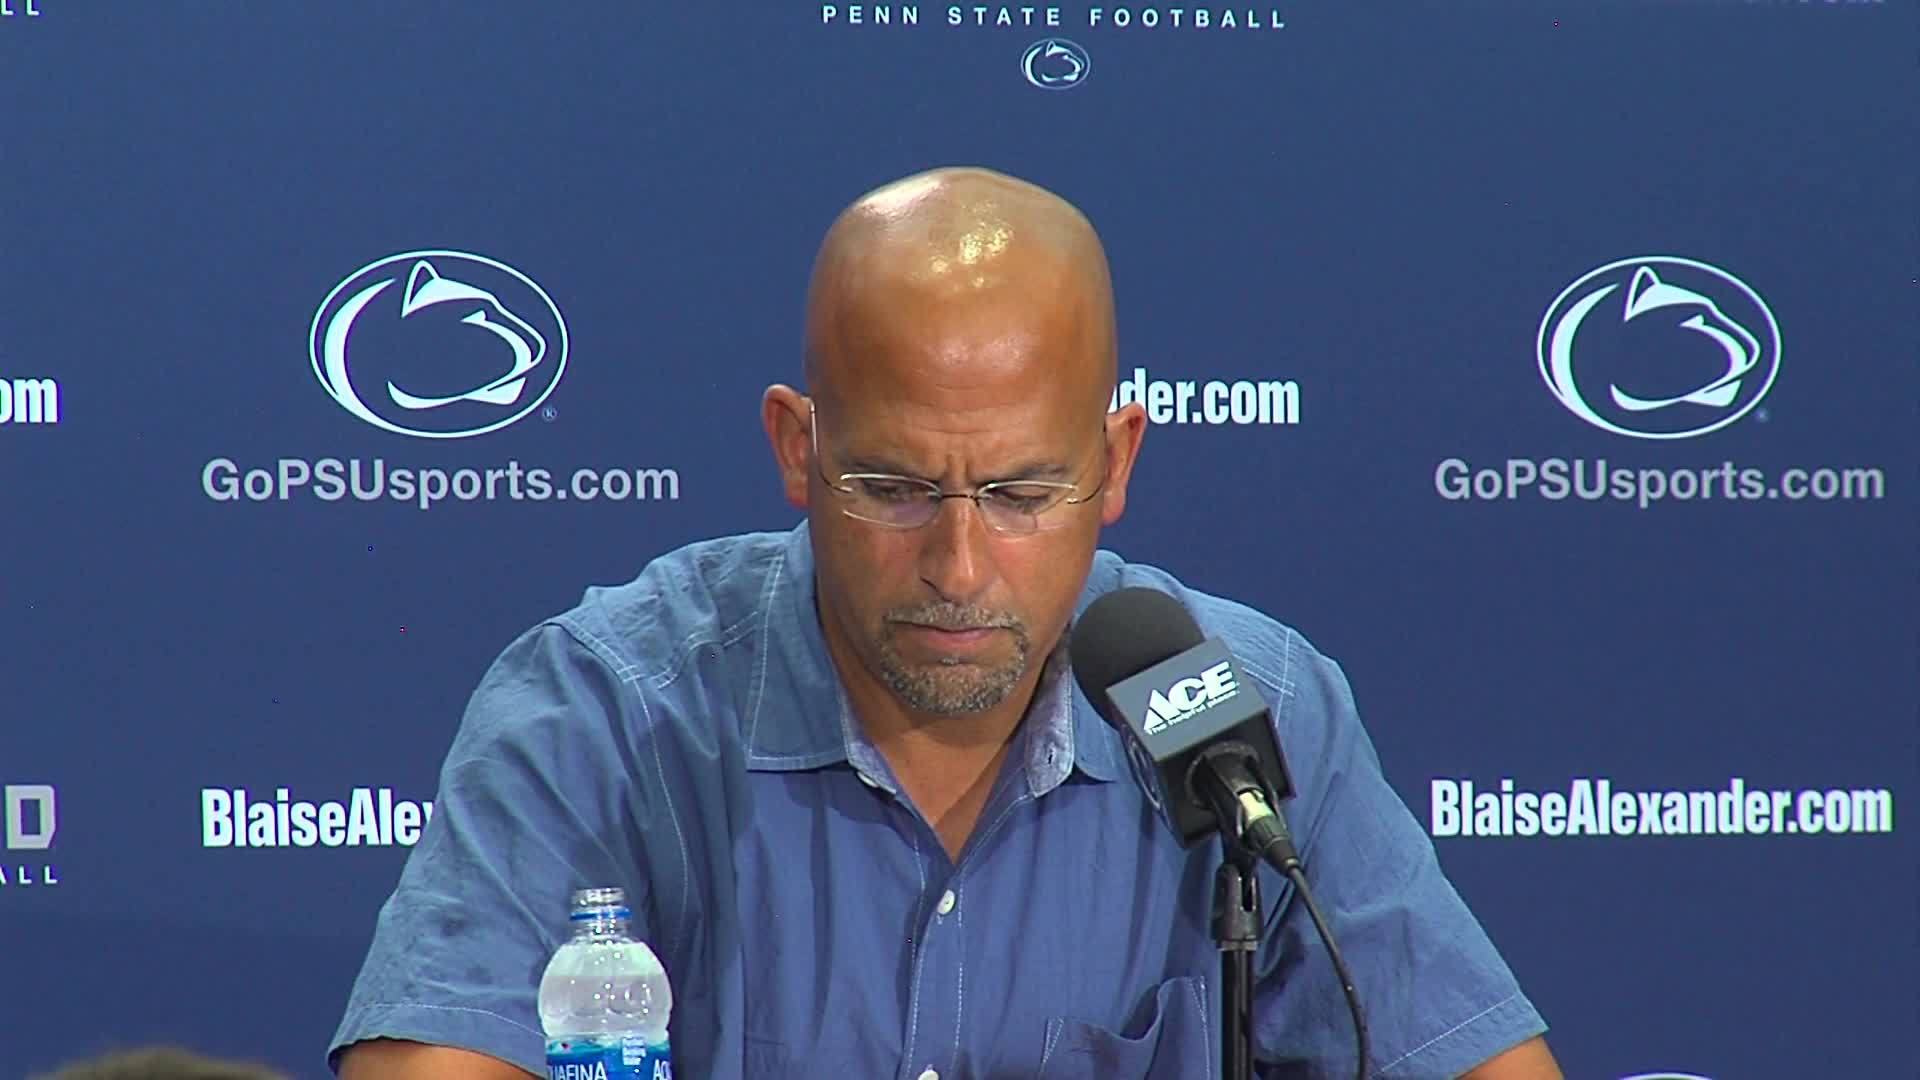 Penn_State_Coach_Franklin_Newser_8_28_Pa_0_20180828171719